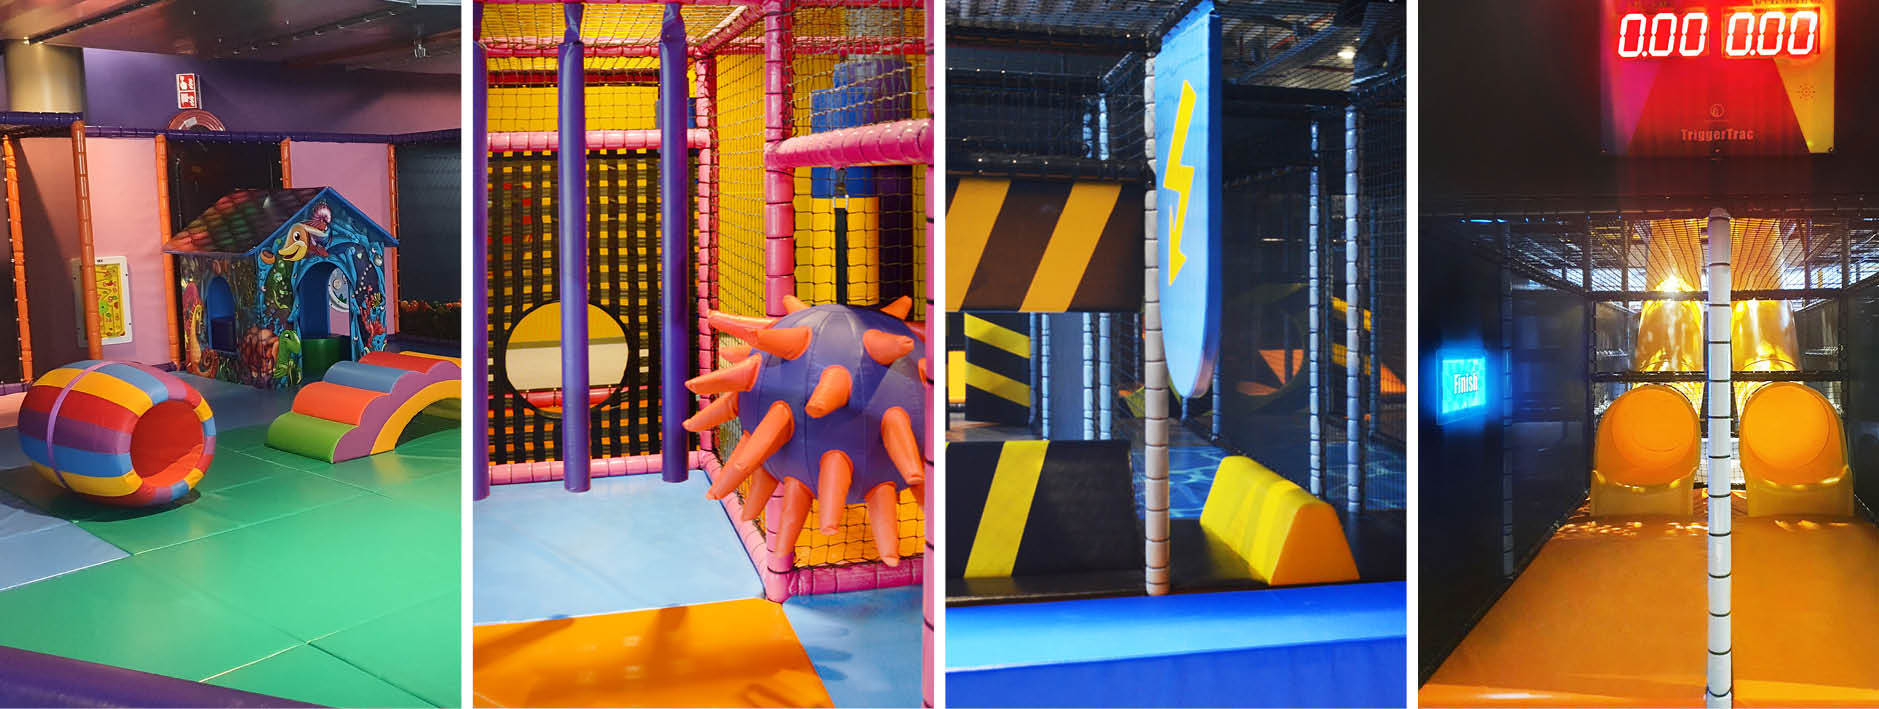 Indoor playground Kabonk